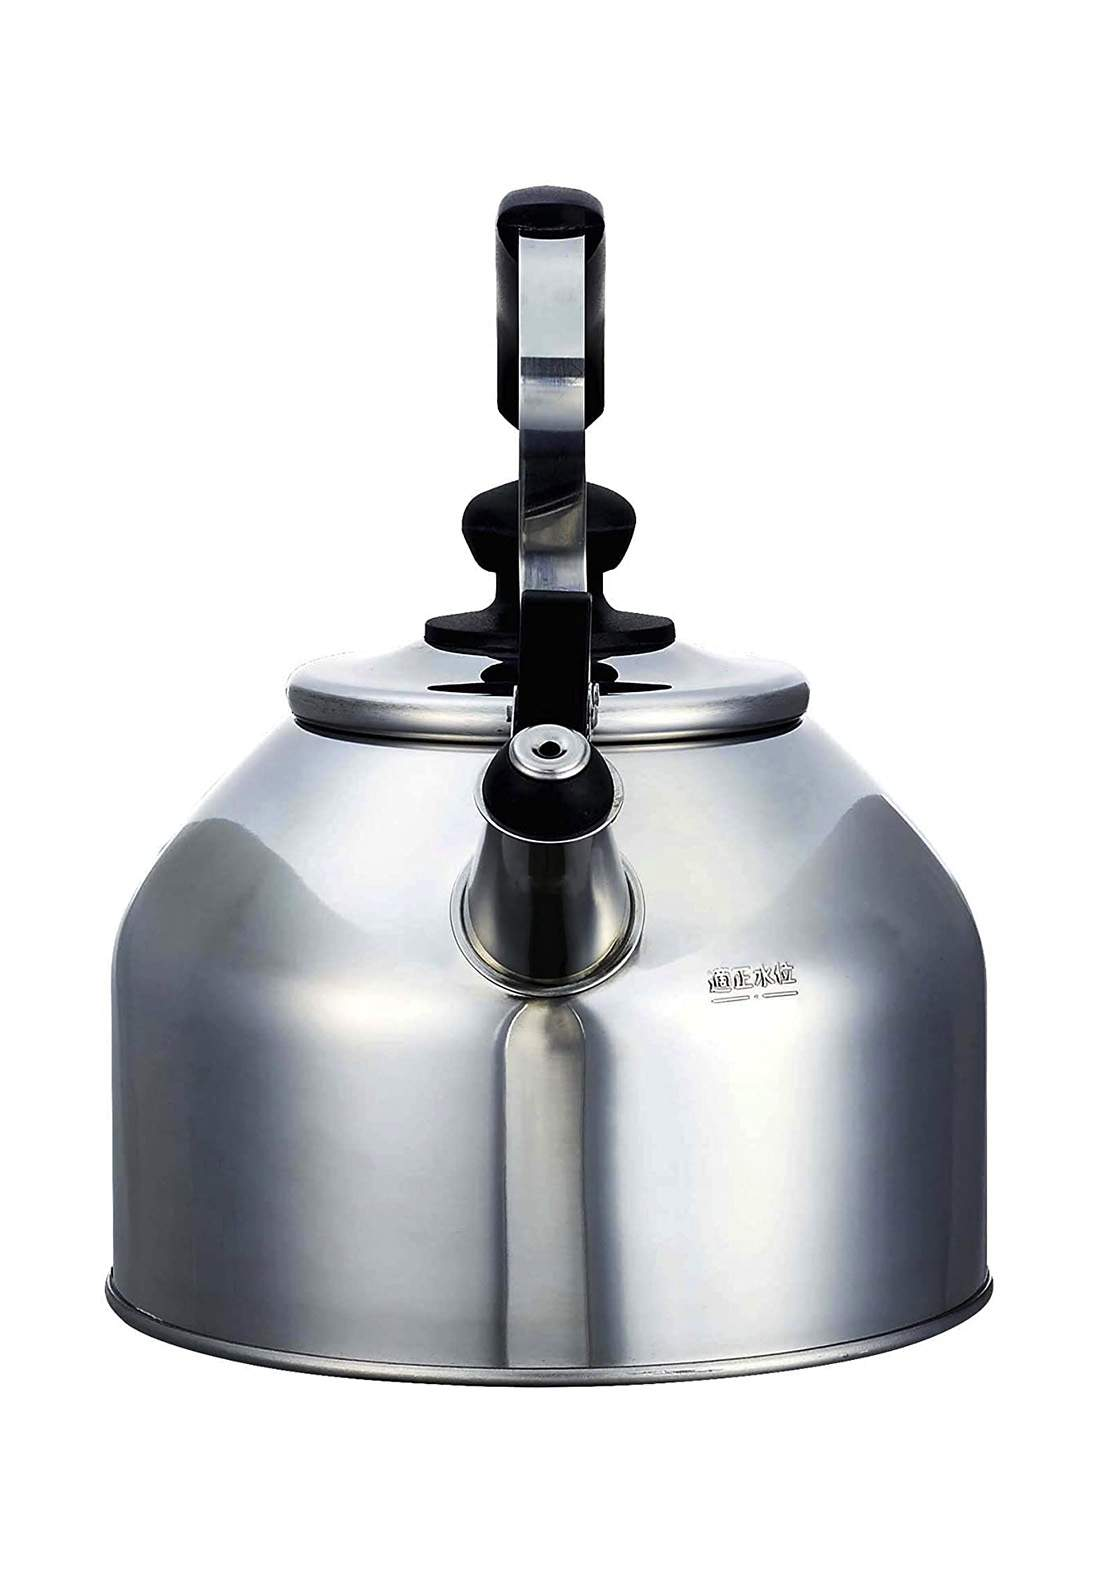 Pearl Metal HB -7352  Wakato Trading Kettle 3.7 L ابريق شاي